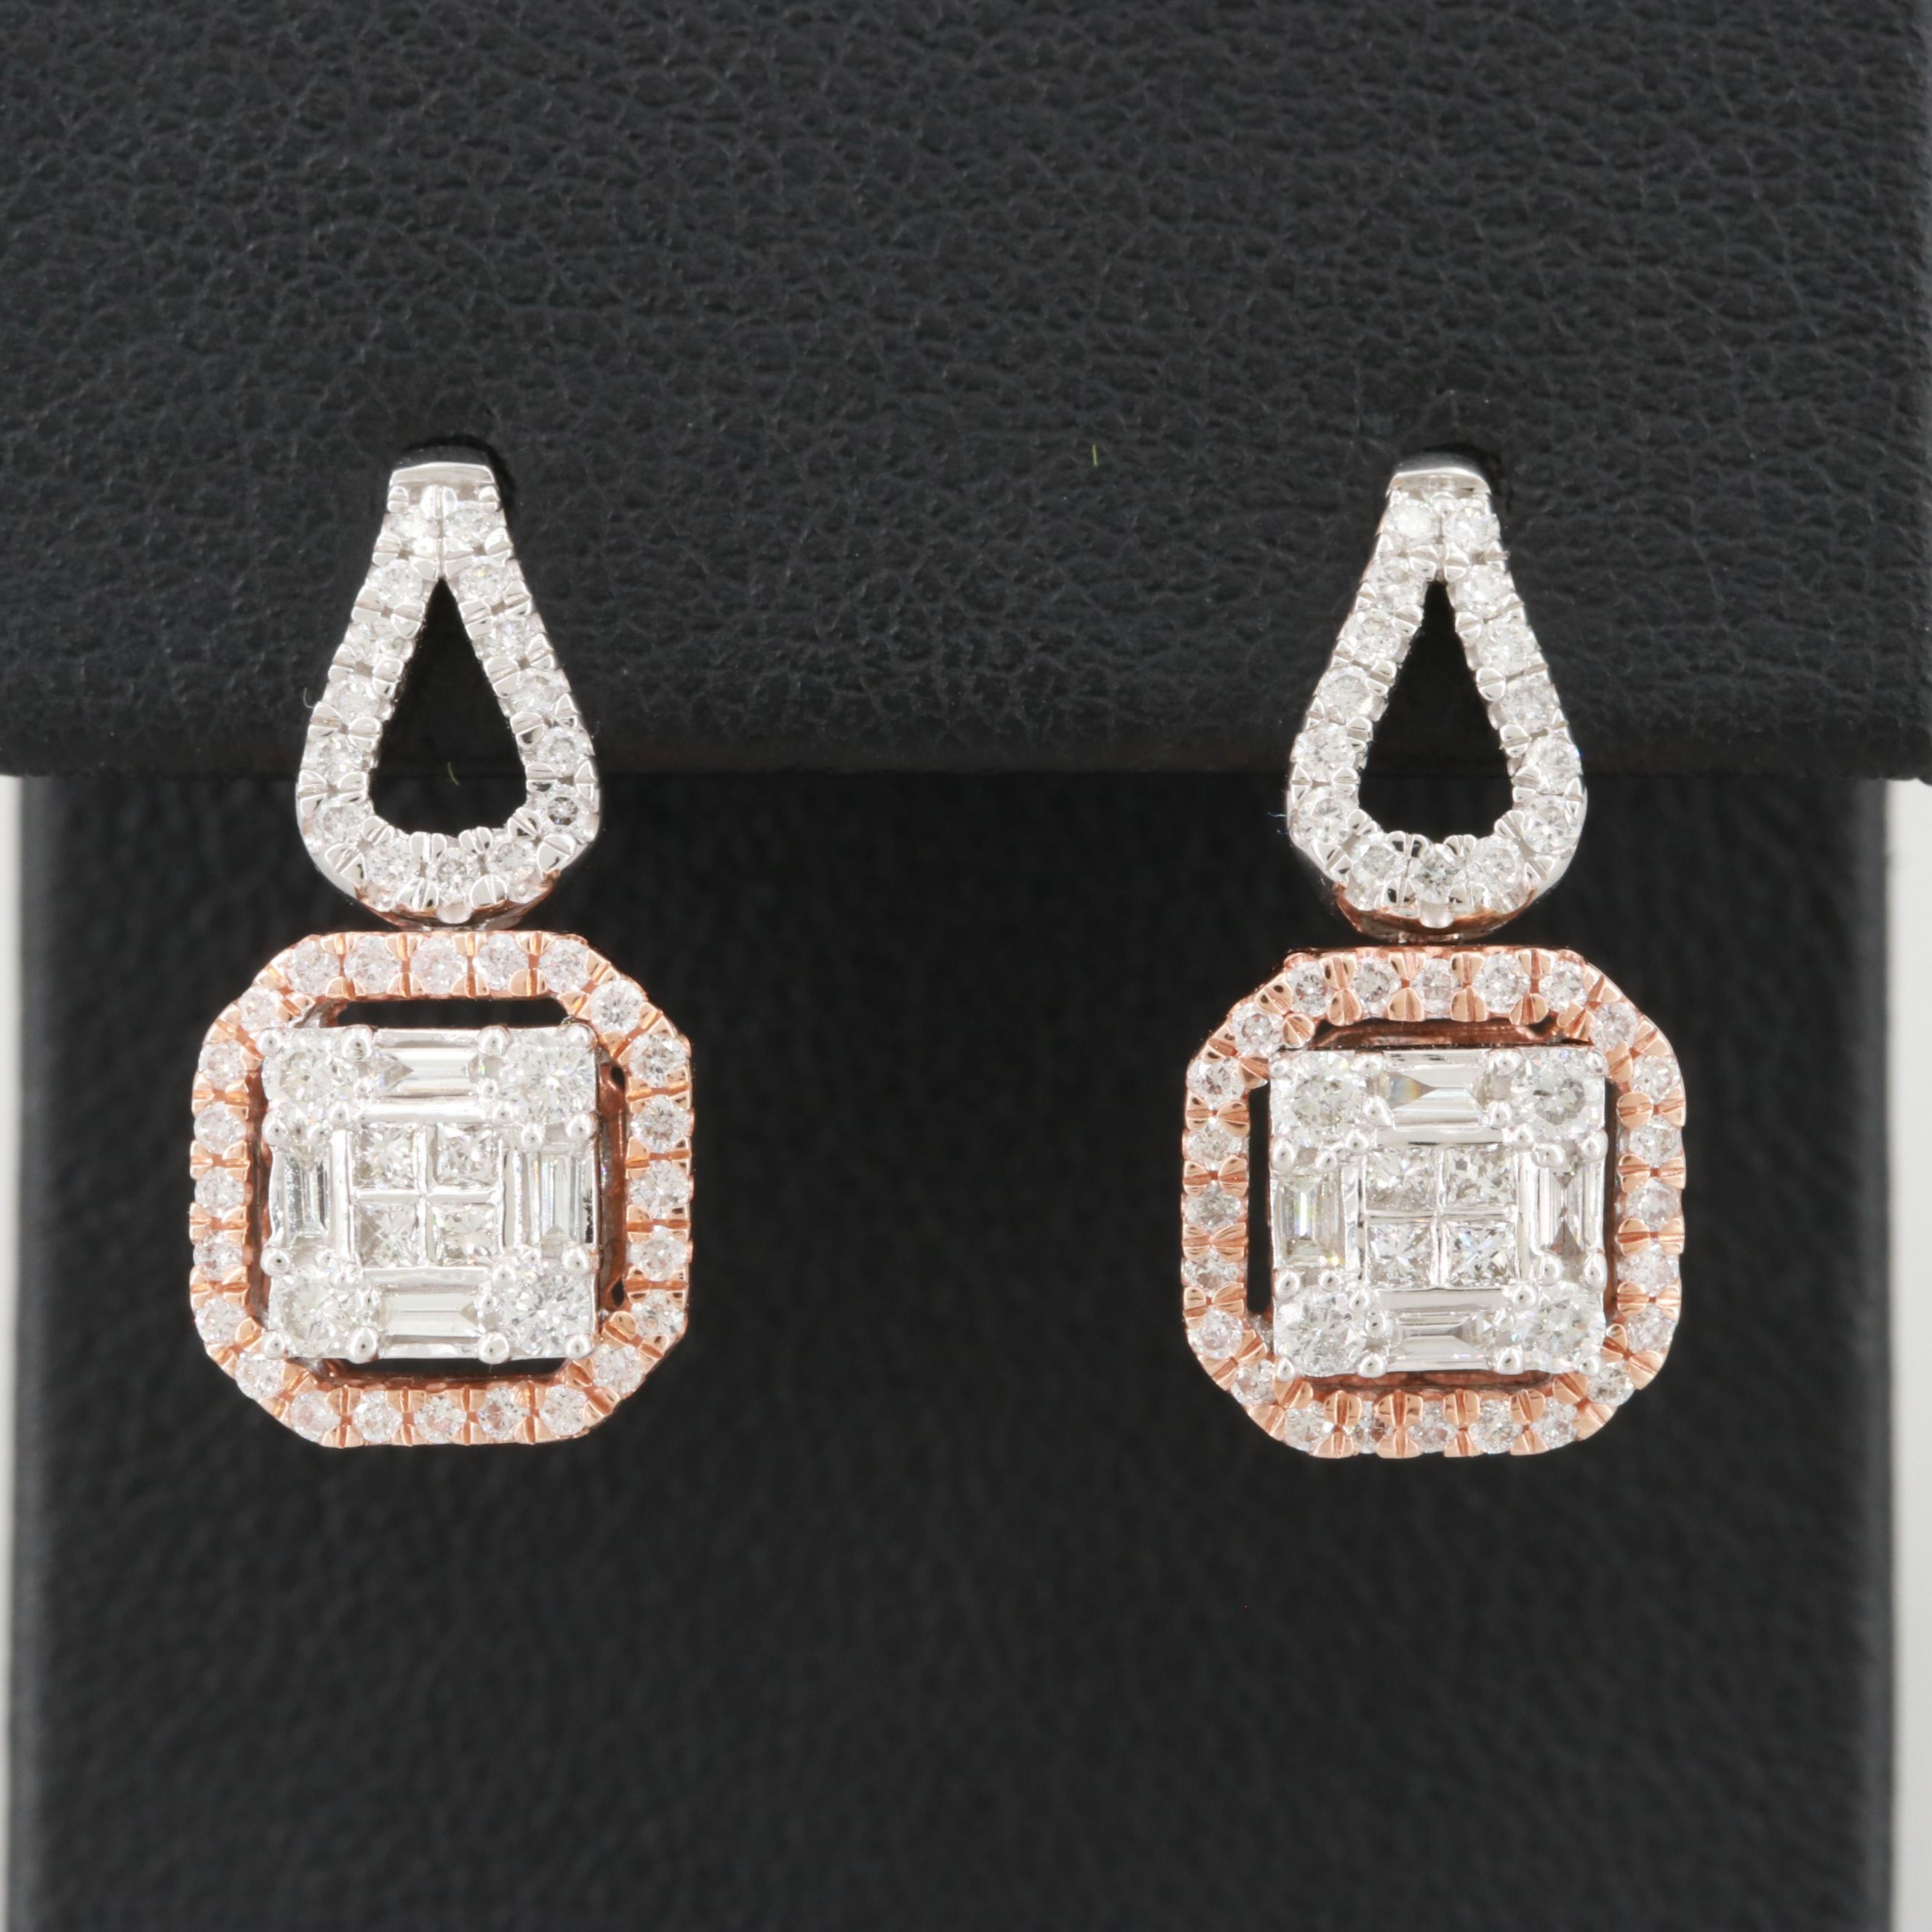 14K White and Rose Gold Diamond Drop Earrings